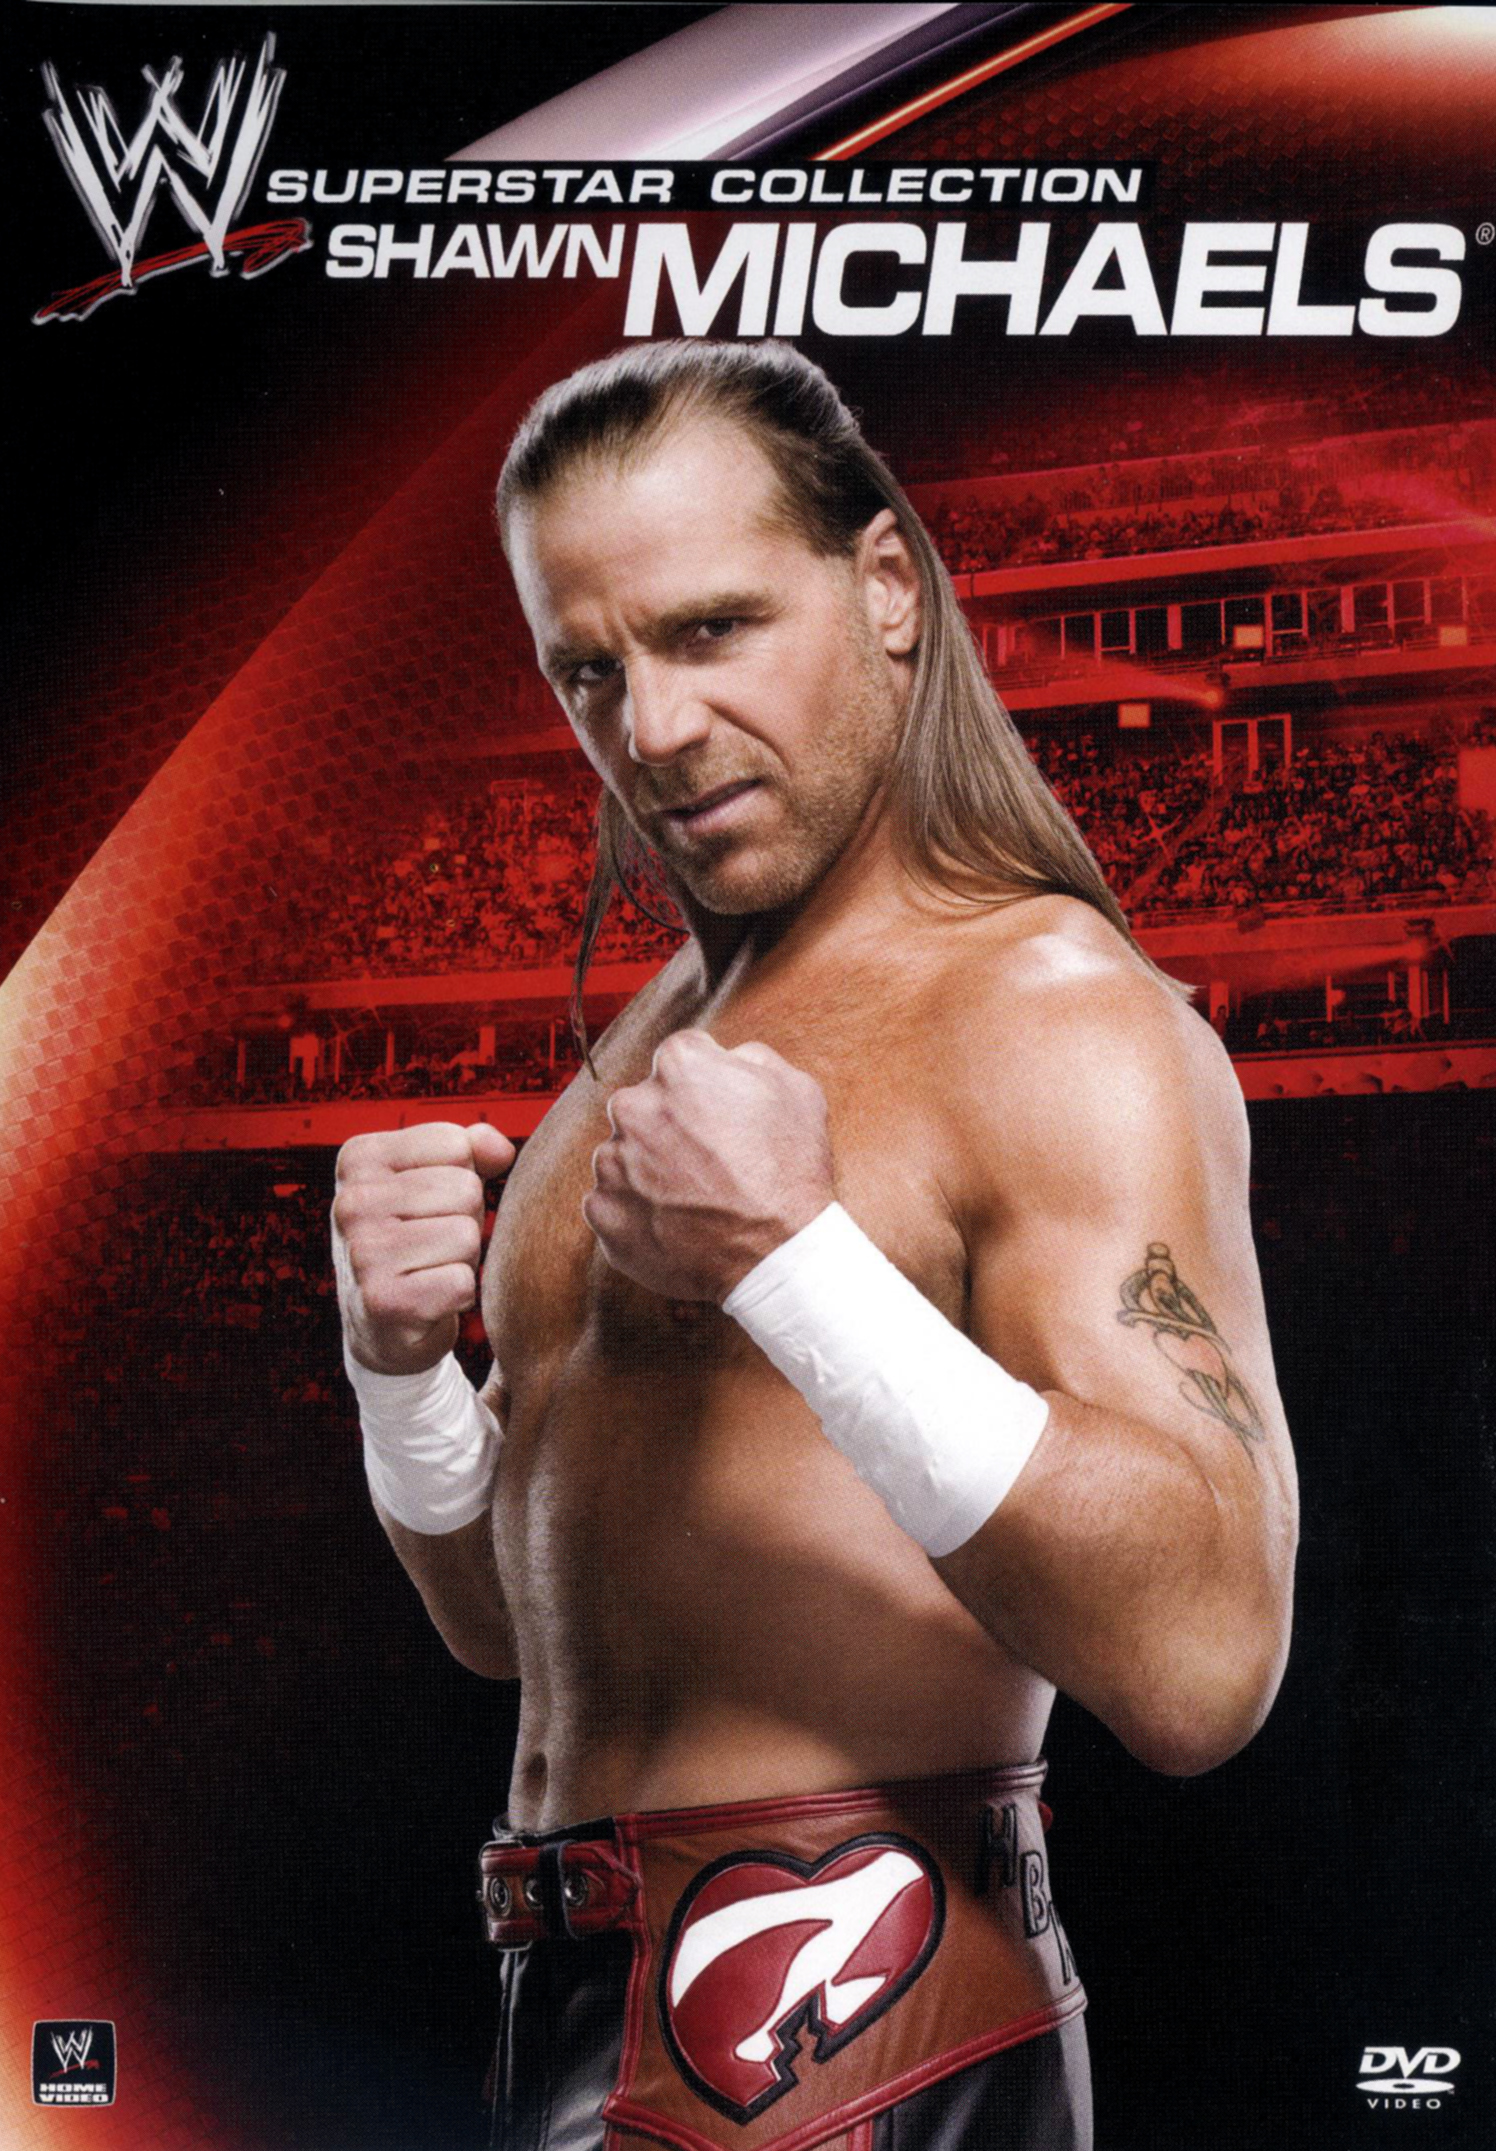 WWE: Superstar Collection - Shawn Michaels